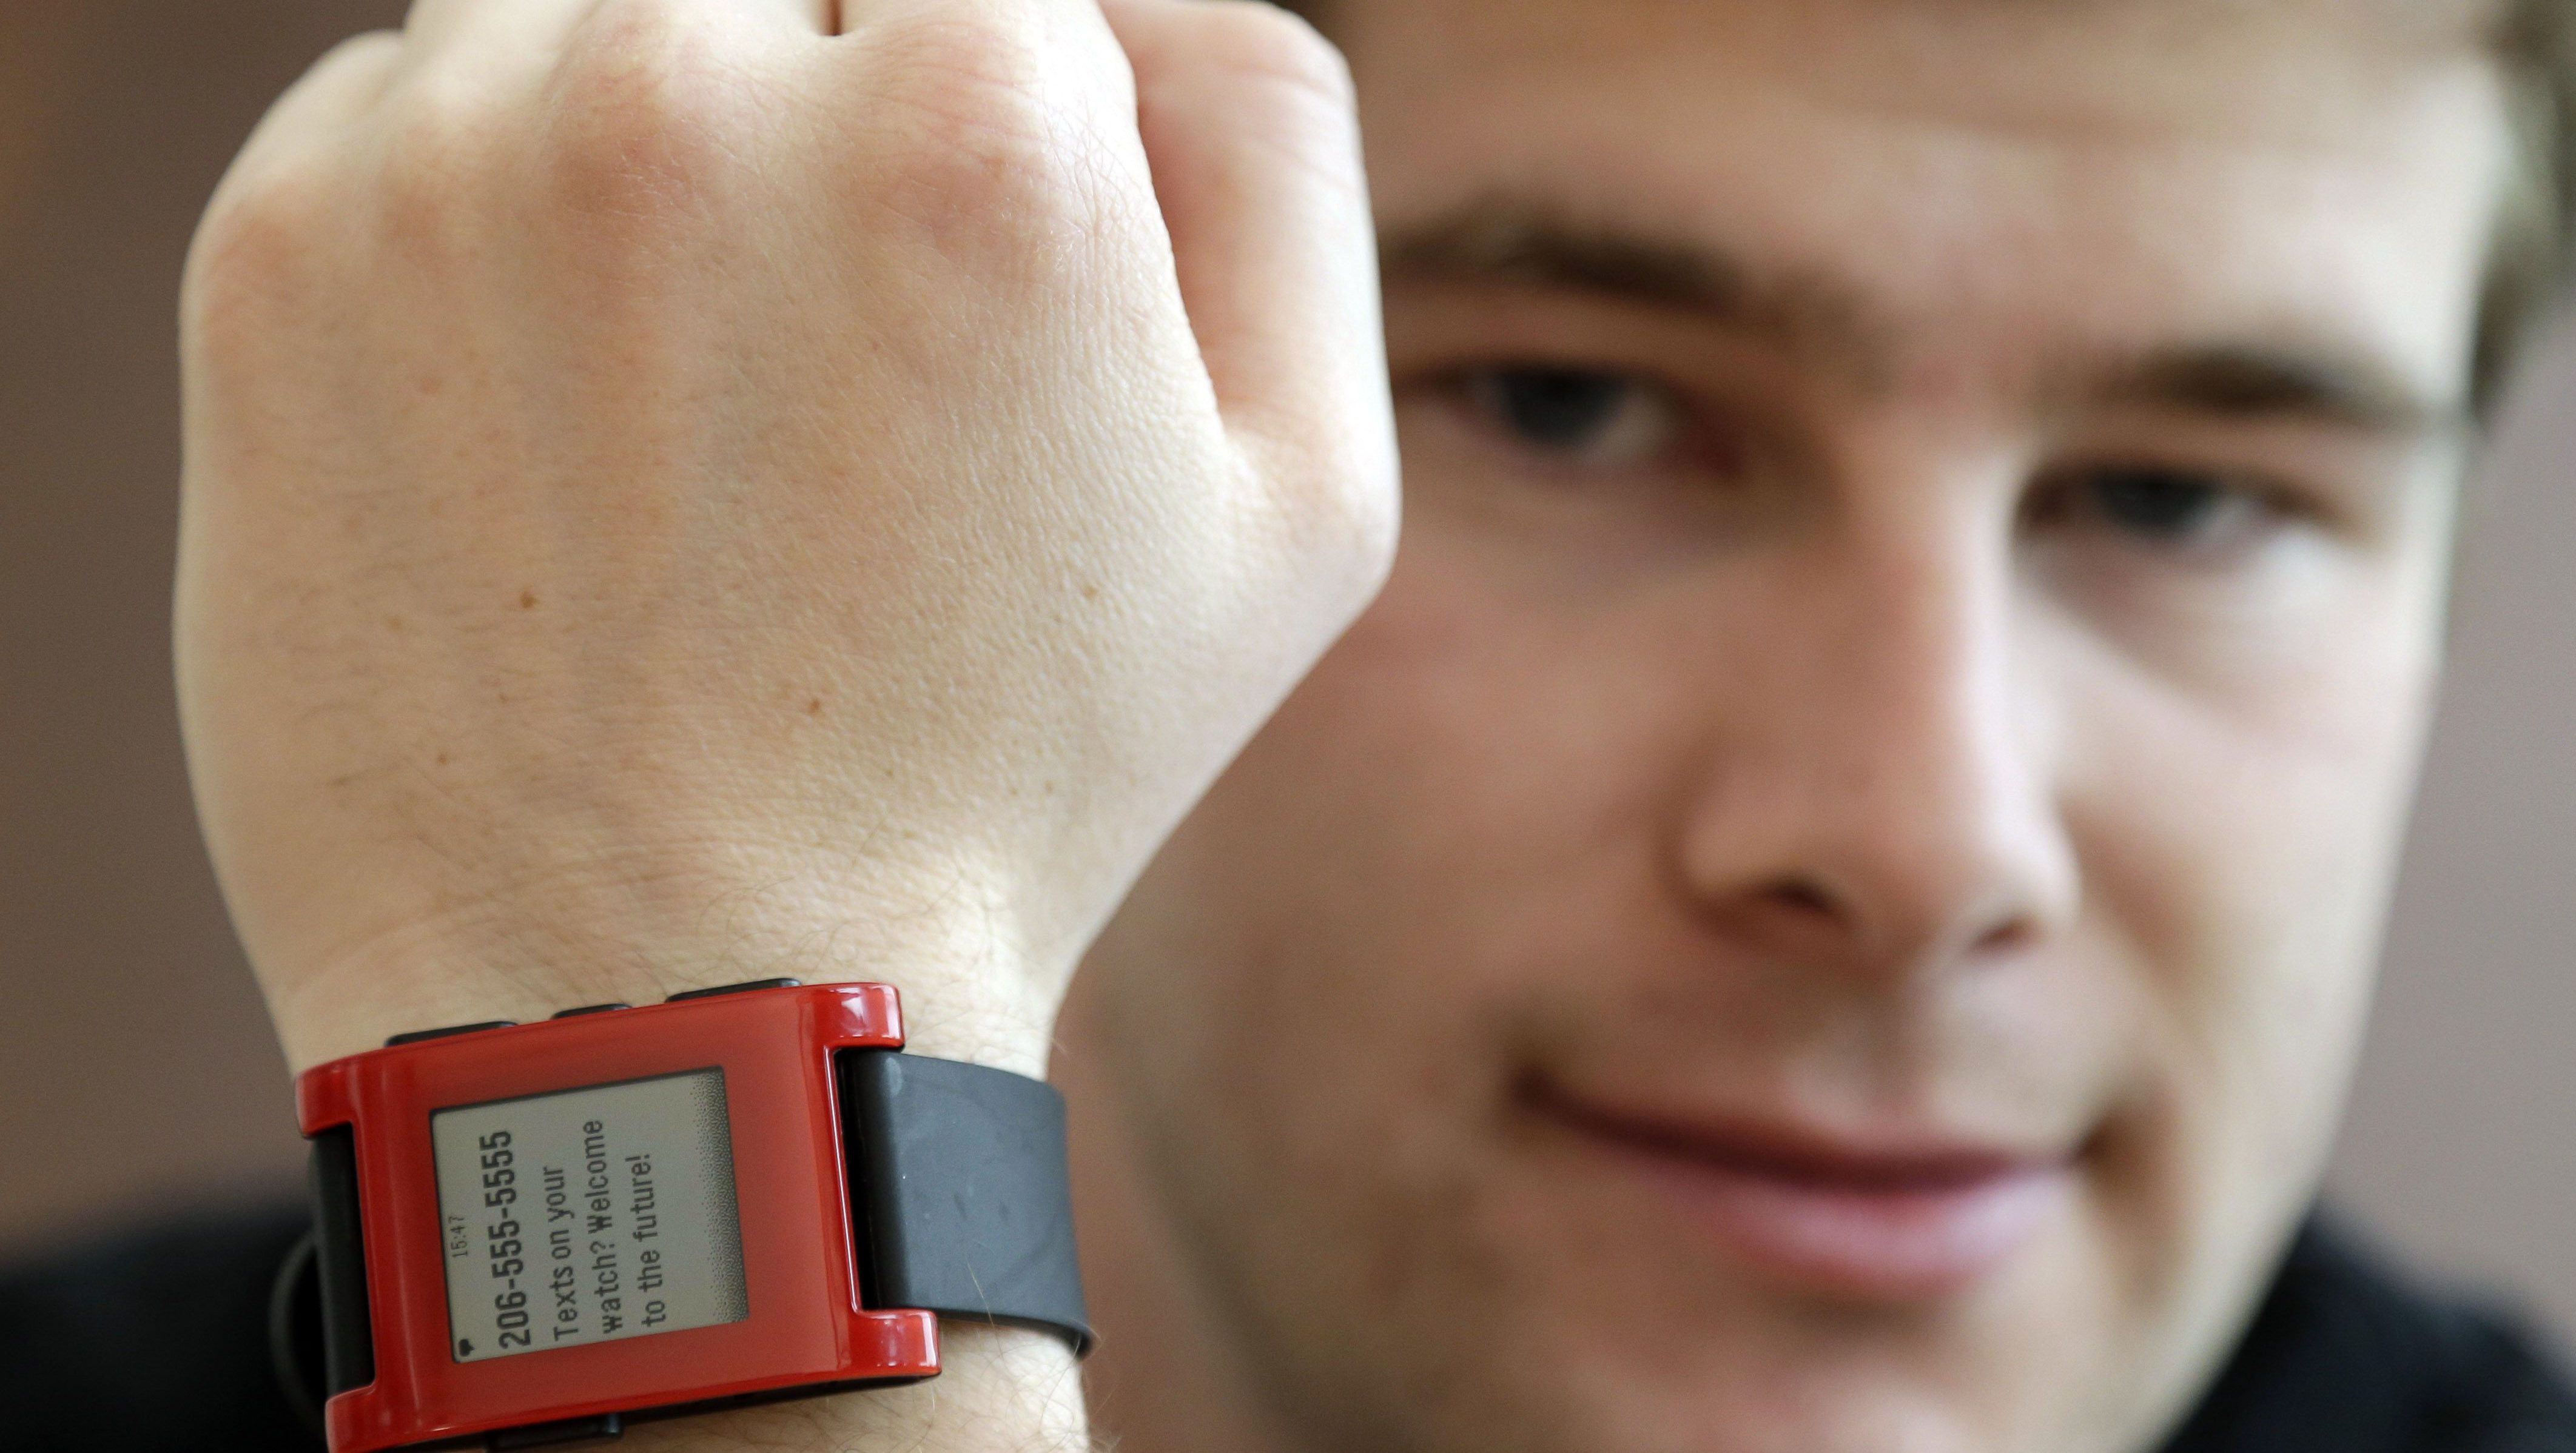 Eric Migicovsky, CEO of Pebble, displays his company's smart watch in Palo Alto, Calif., Tuesday, Feb. 12, 2013.  This new watch not only tells time, but also connects to smart phones within 10 meters.